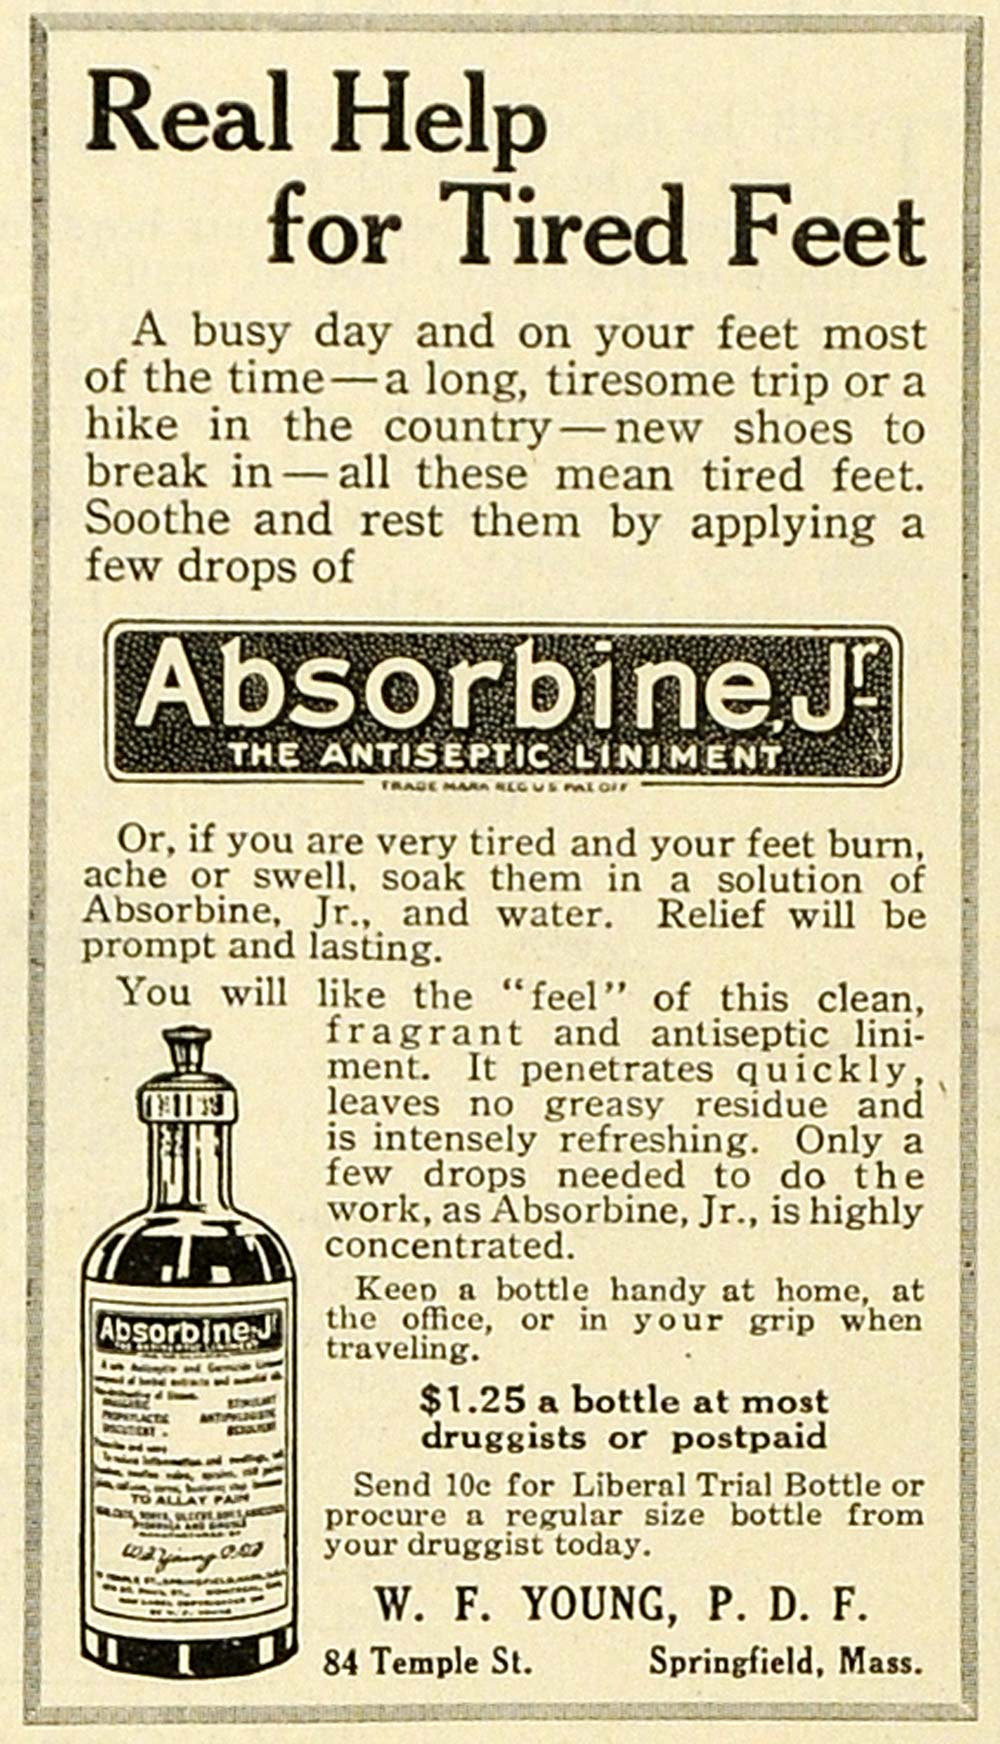 1918 Ad W F YoungSpringfield Absorbine Jr Antiseptic Liniment Bottle Remedy TMP2